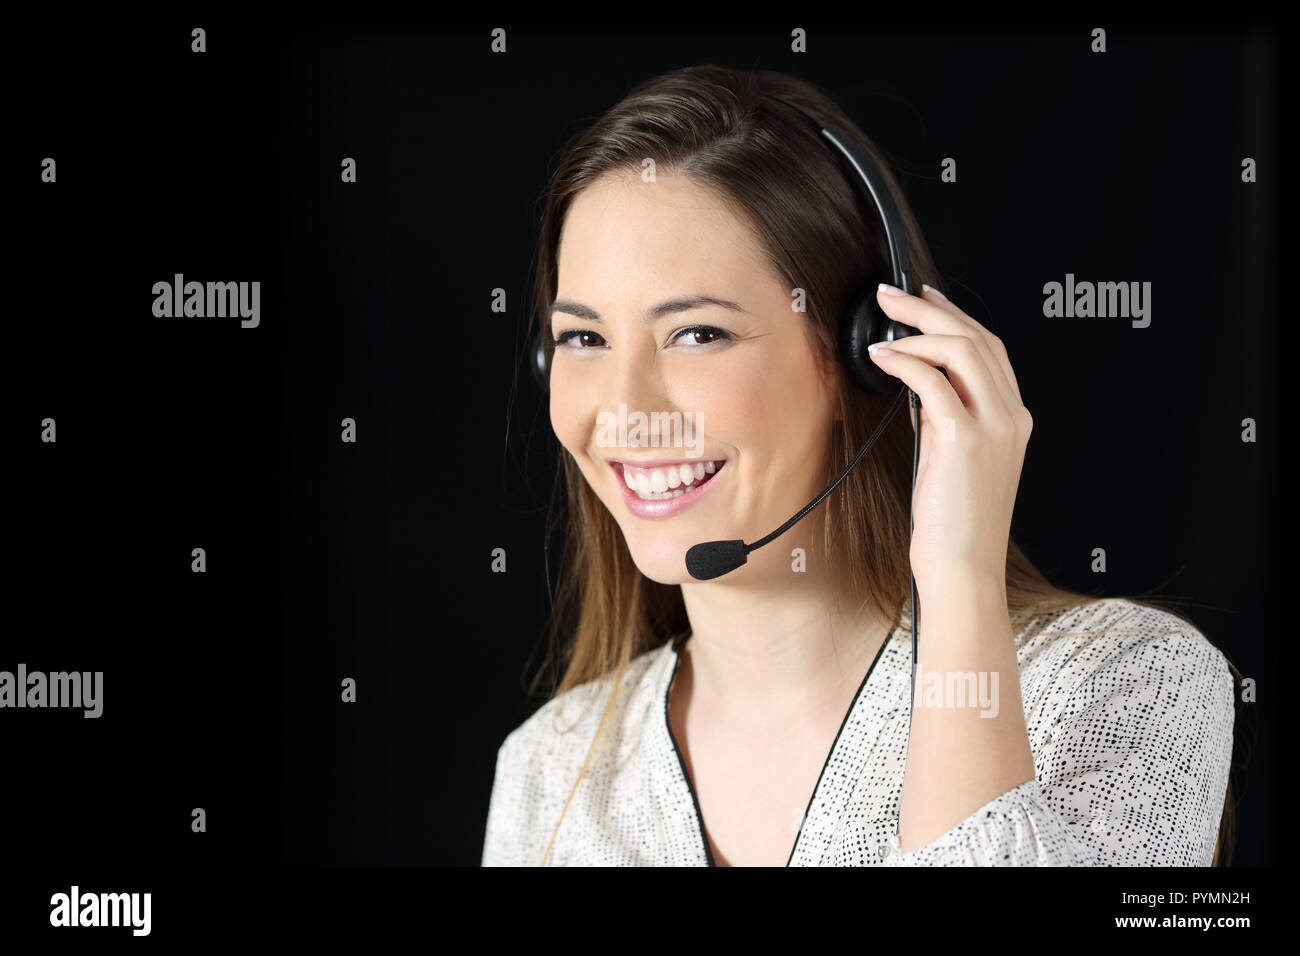 Happy tele marketer looking at camera on black background - Stock Image